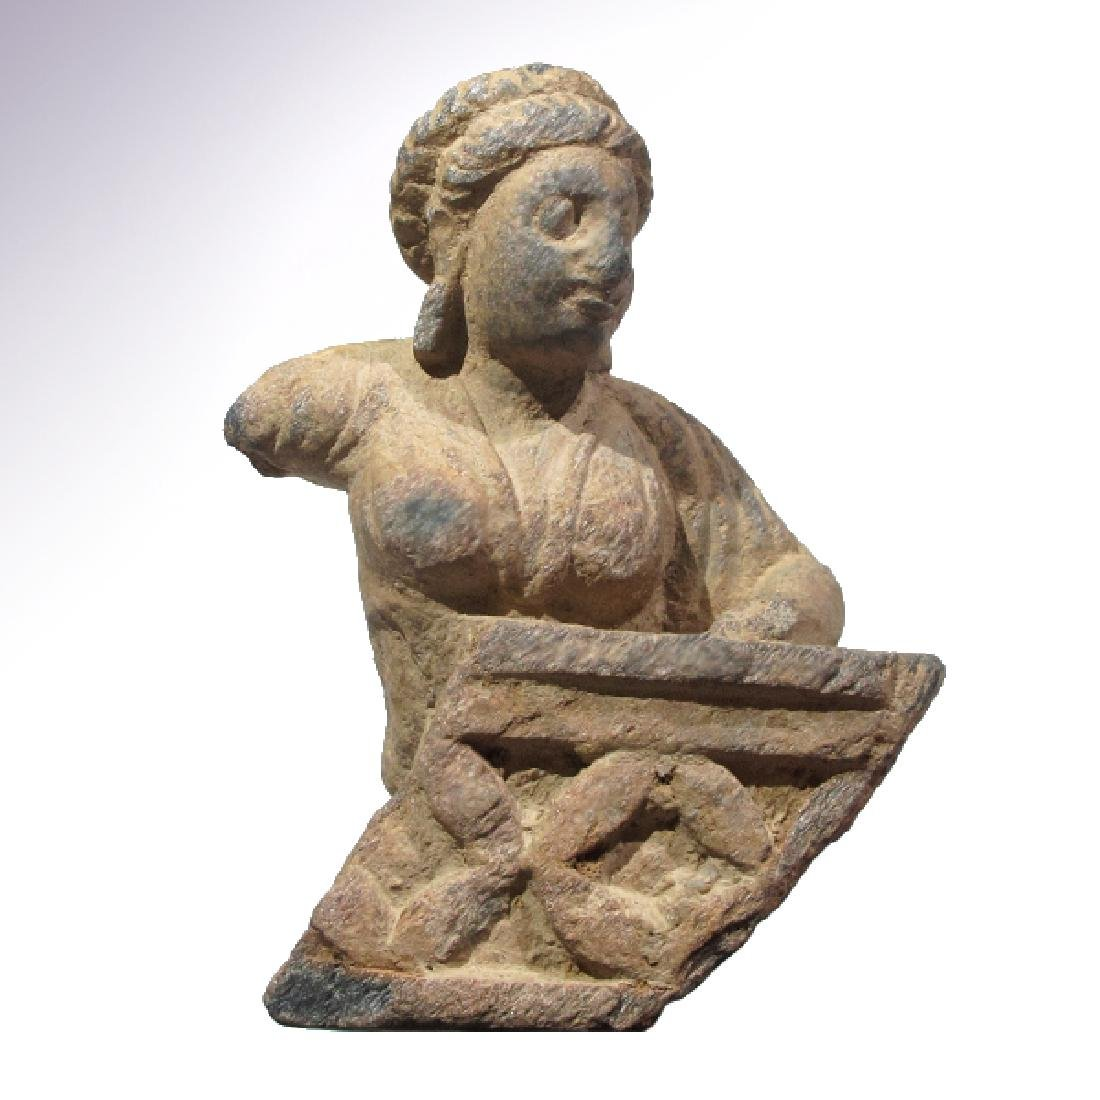 Gandhara Schist Relief Figure, Bust of a Lady, 2nd